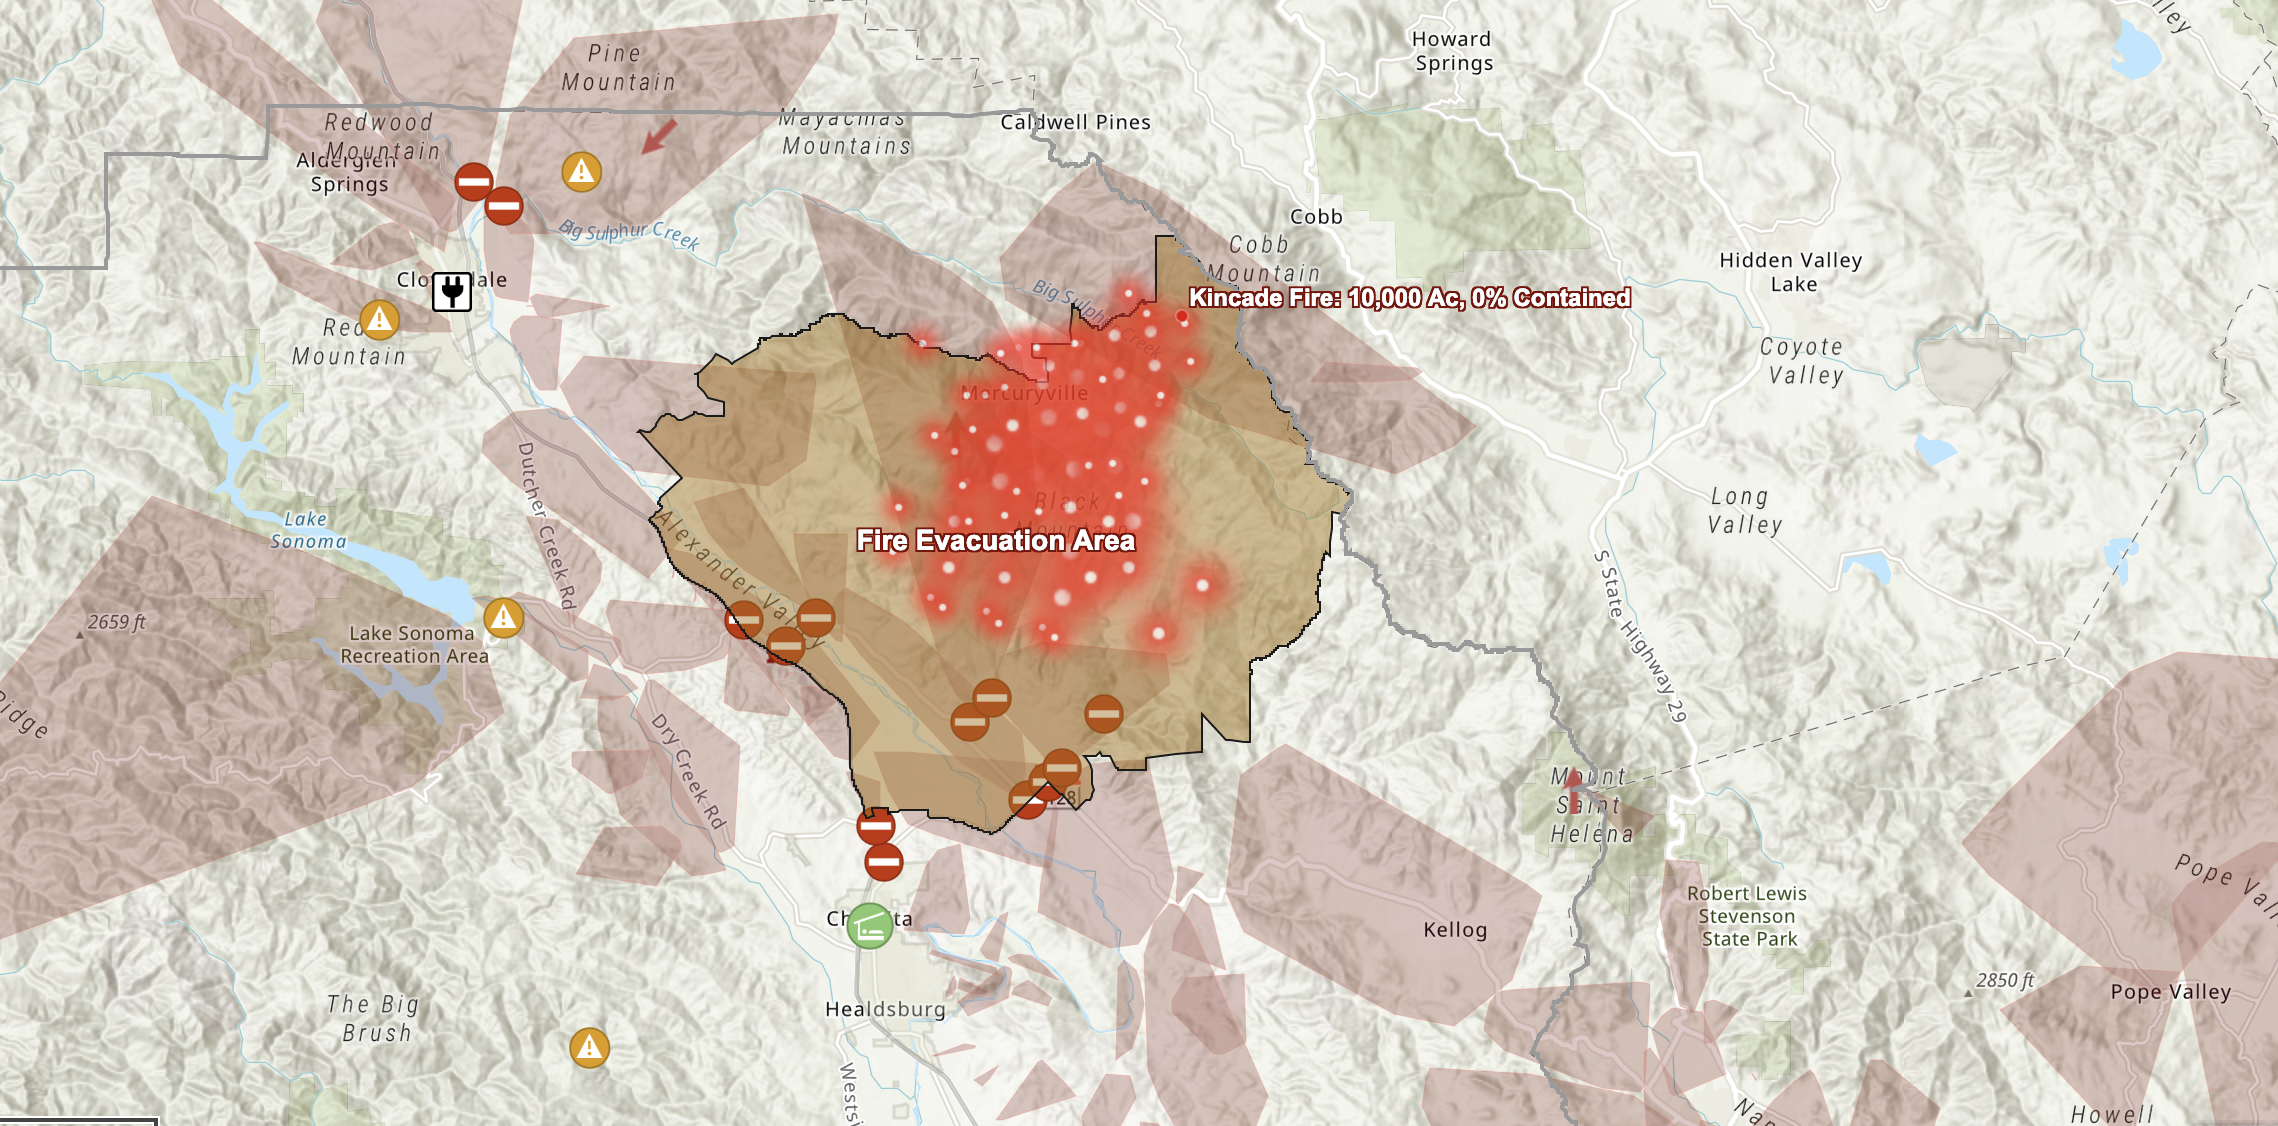 Map of Kincade Fire in Sonoma County | KQED Science California Fires Location Map on california current wildfire forest fires, 2014 southern california wildfire map, california fire tax map, california fire map los angeles, california fire zone map, sacramento california wildfire map, current california wildfire map, california fires burning now, california fire temperature map, sand el dorado county fire map, southern california fires map,